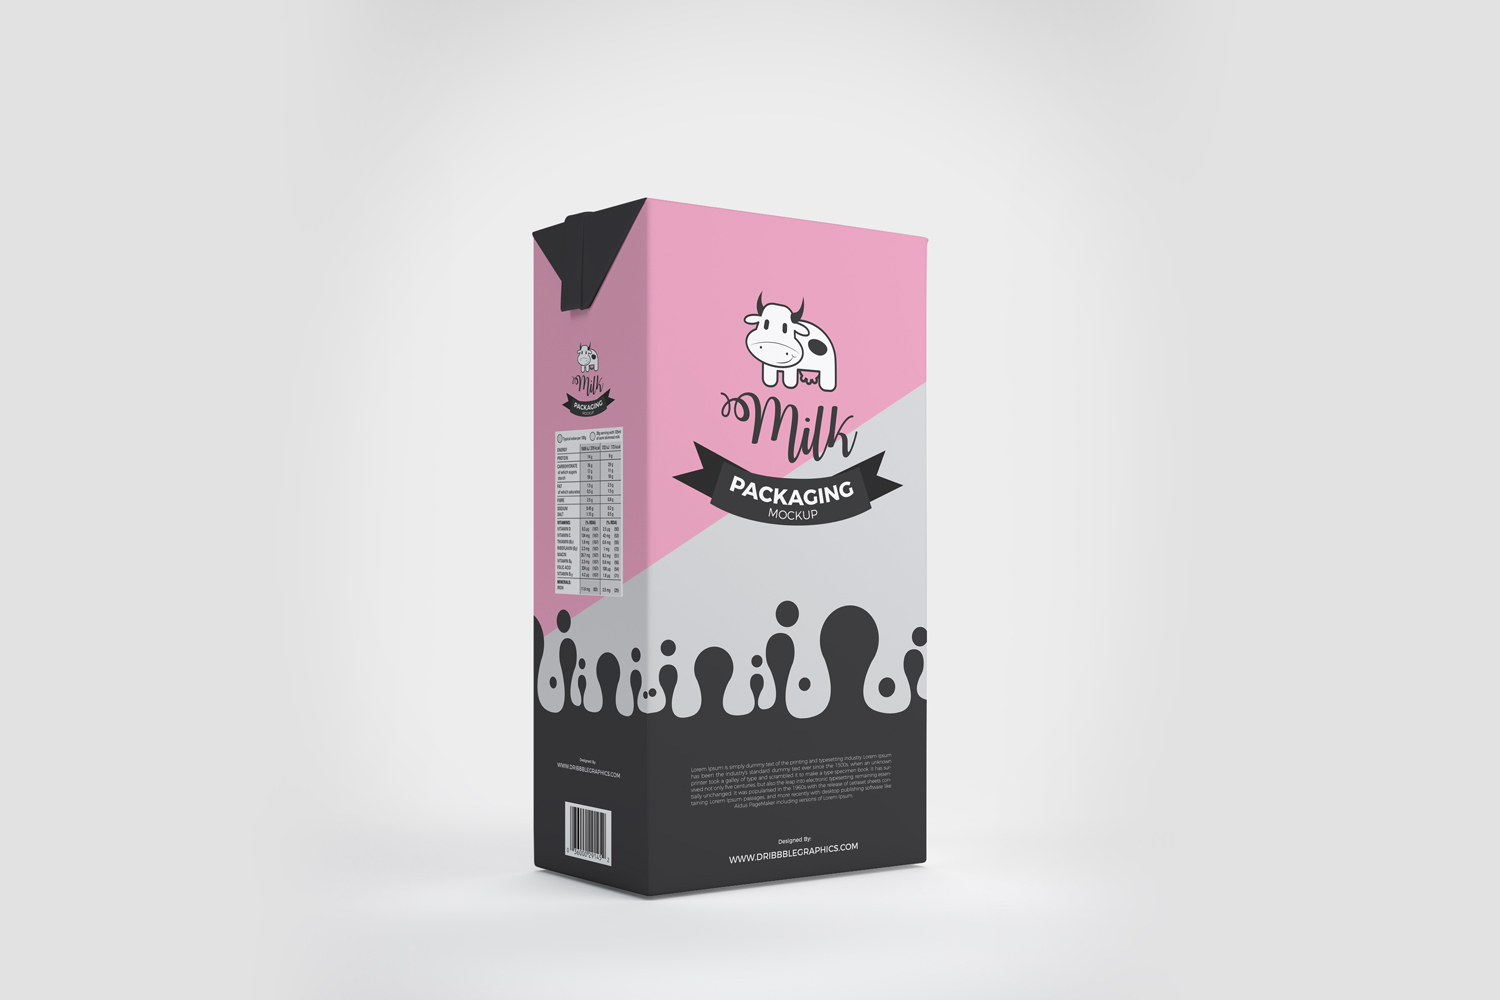 Free-Milk-Box-Packaging-Mockup-Preview-3